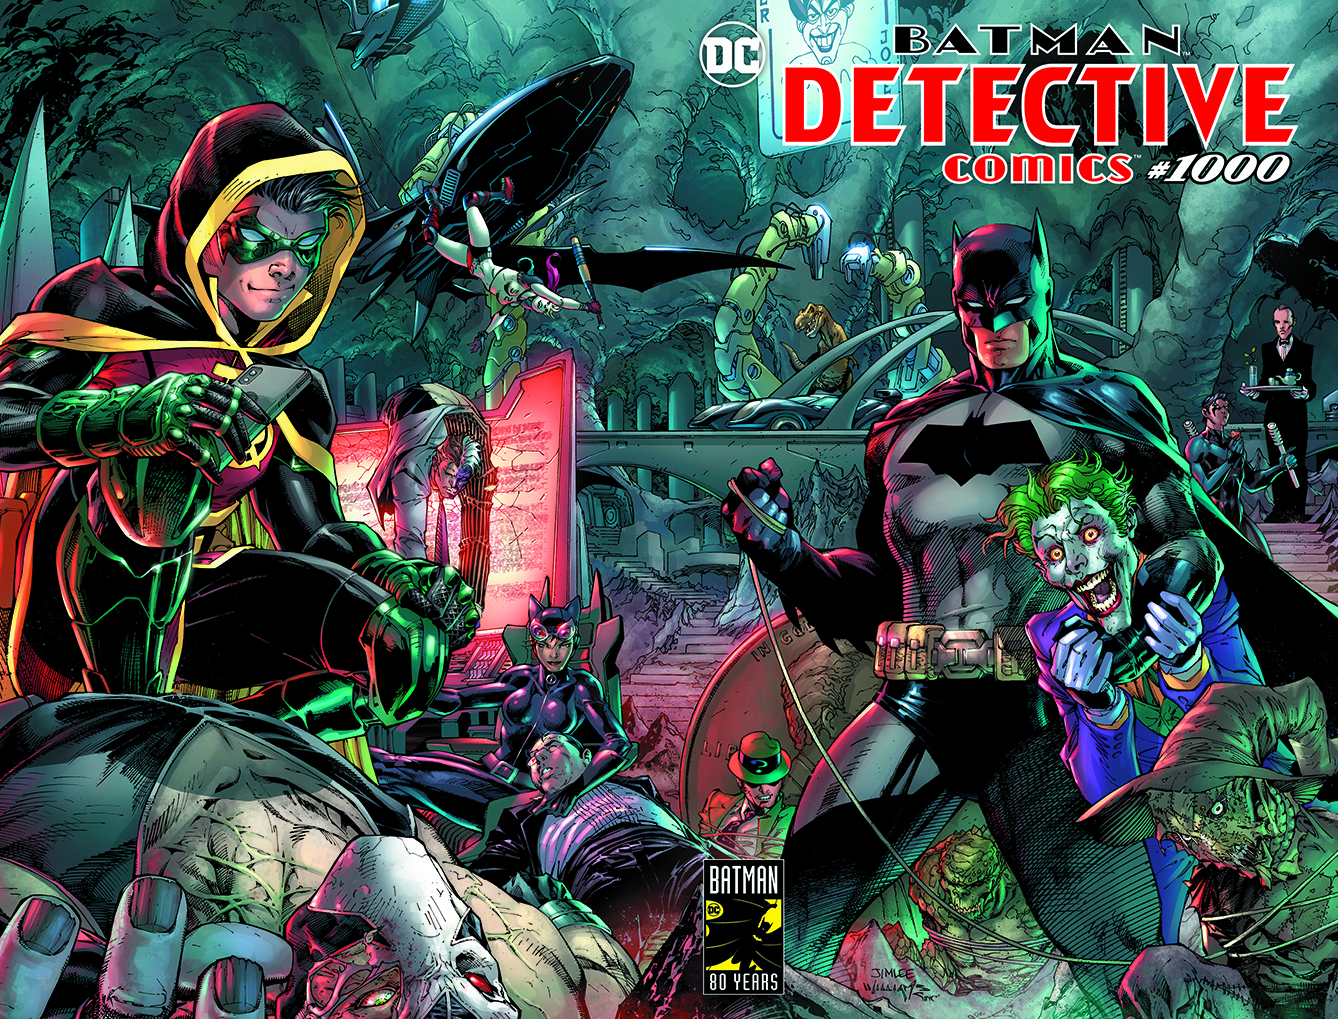 Detective Comics #1000 Main Cover by Jim Lee